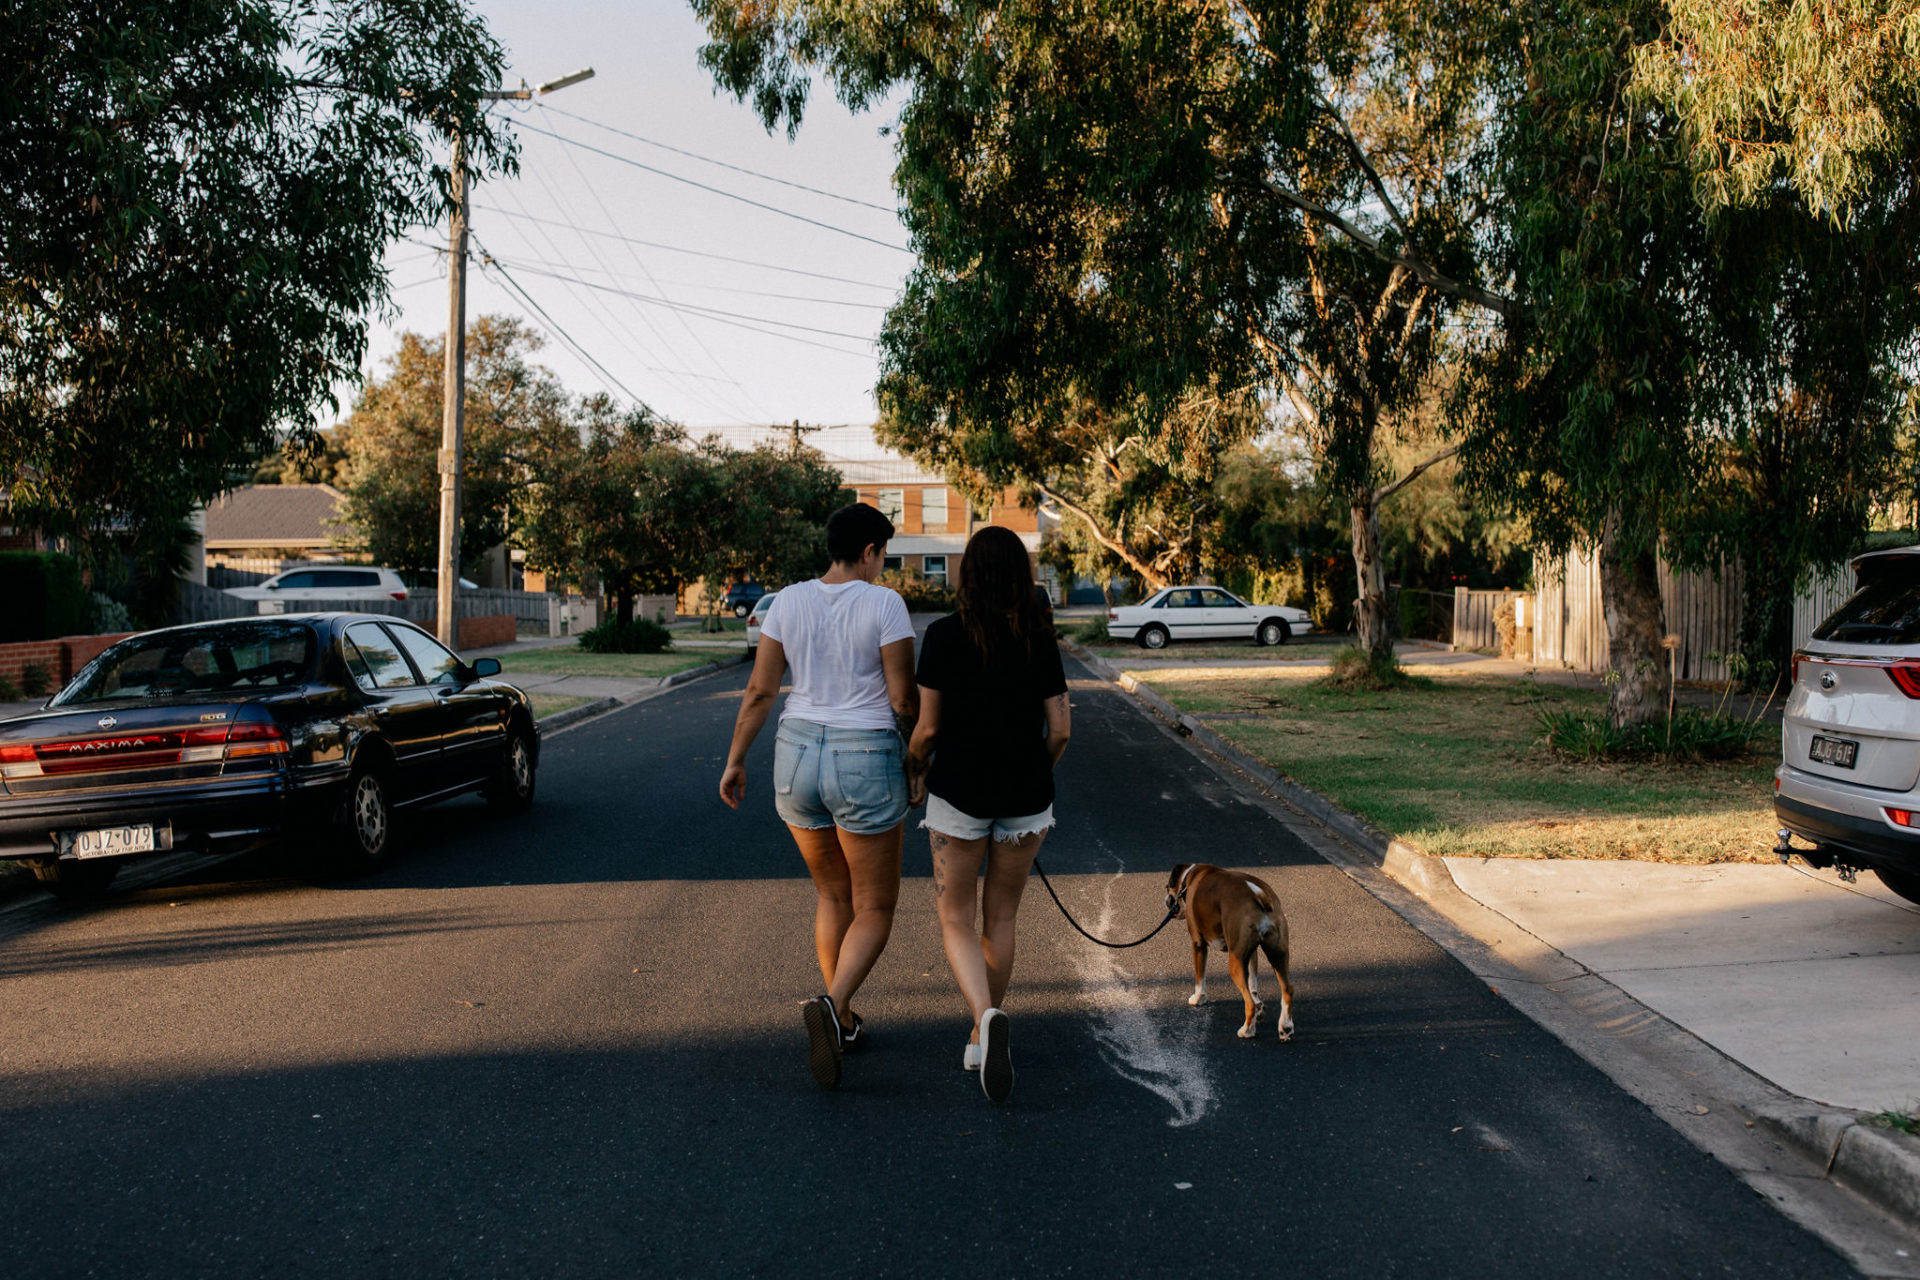 In Love Session Thornbury-engagement photos--couple shoot-lesbian couple with dog-park-melbourne-summernight-walk